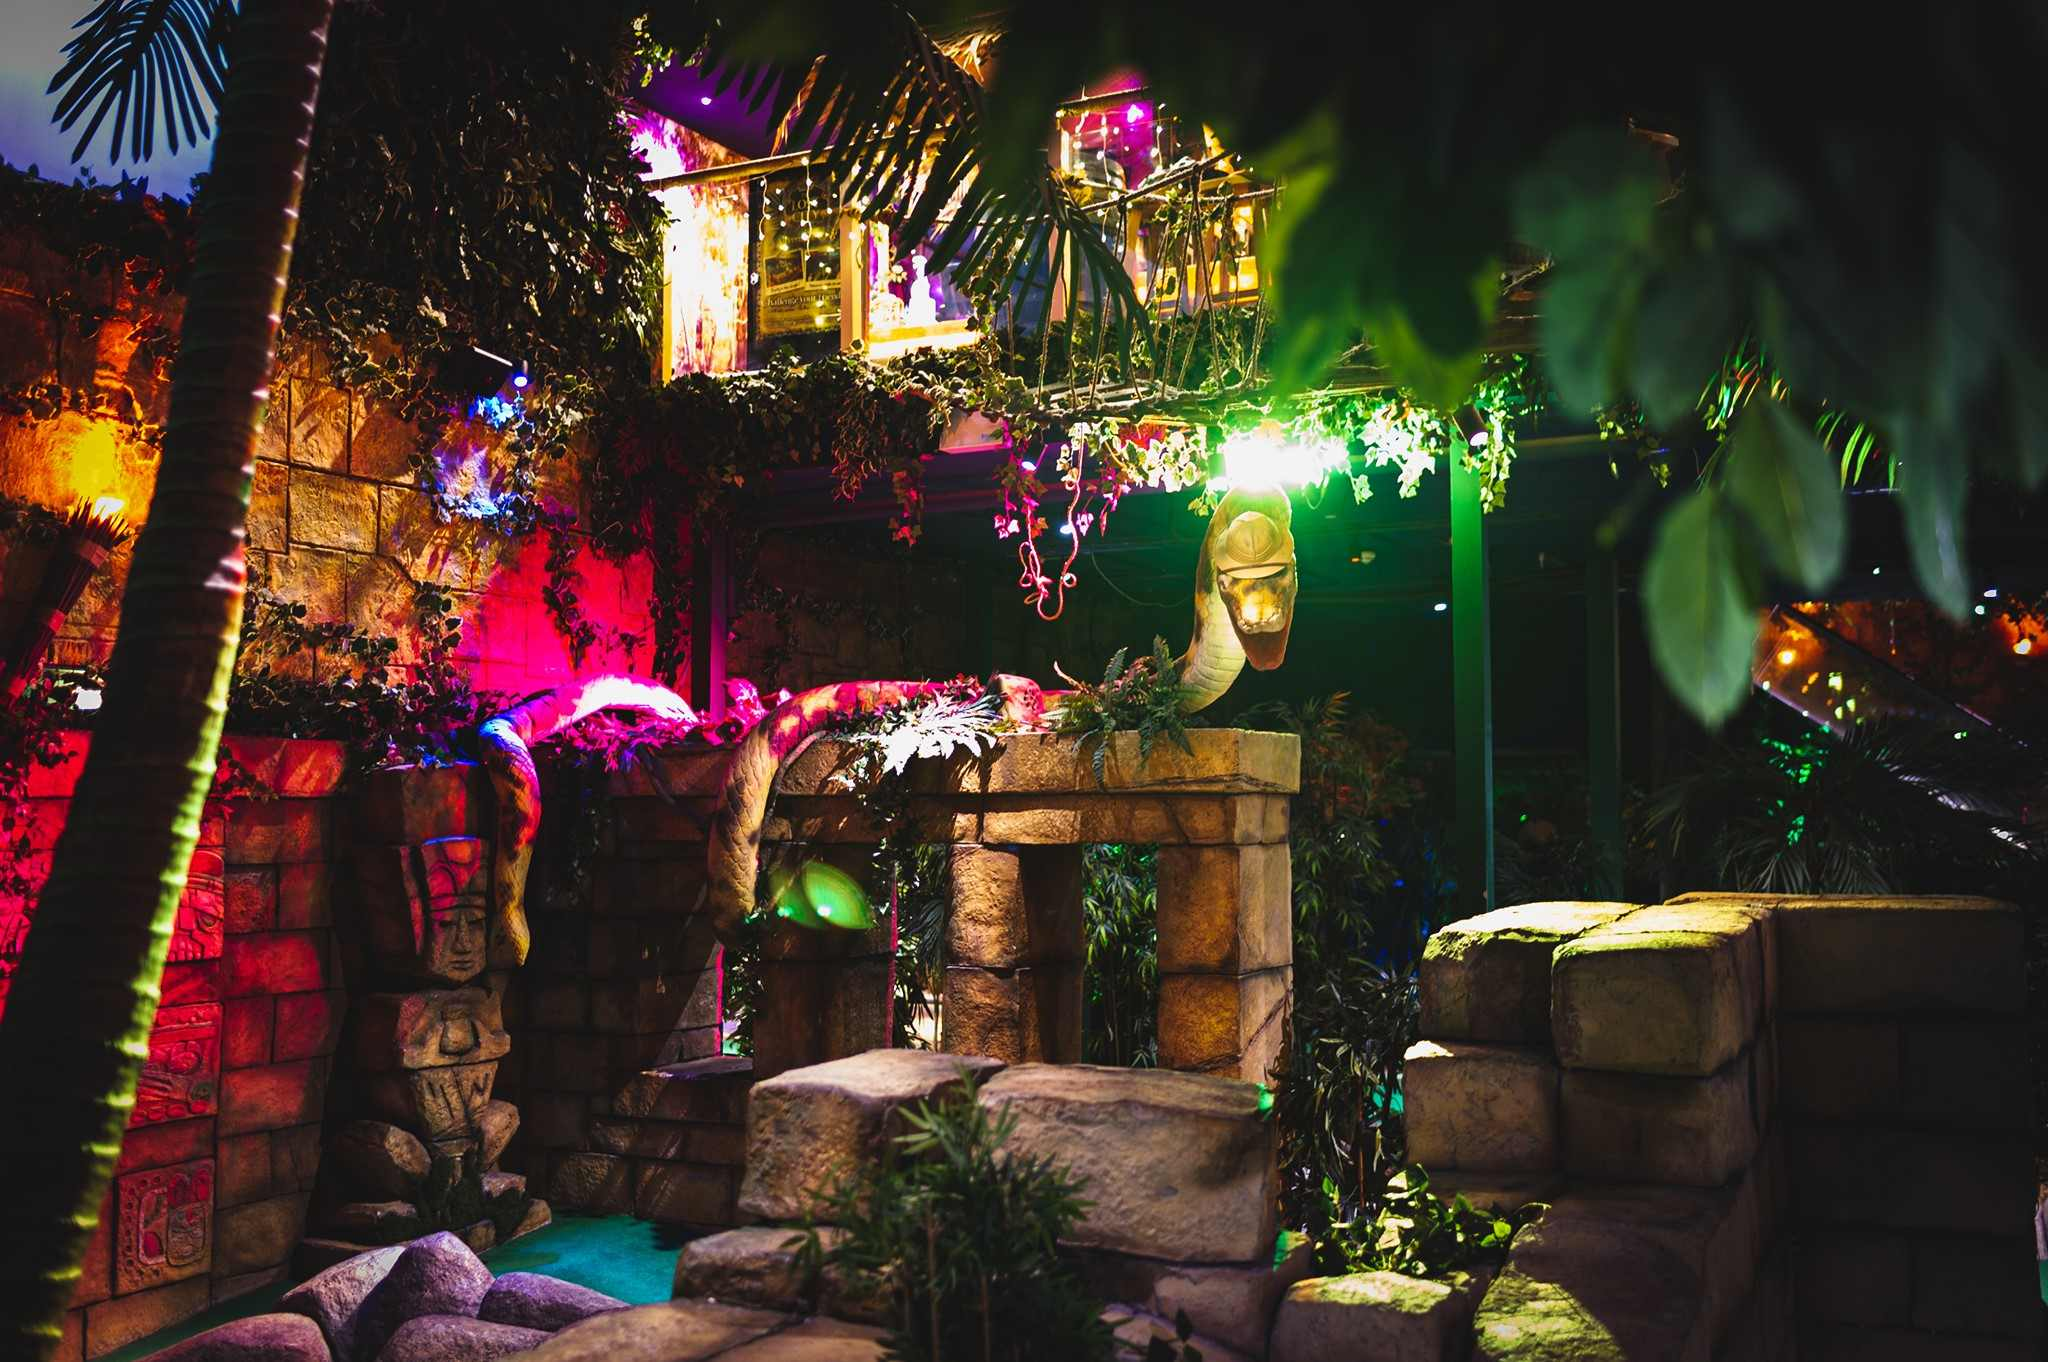 indoor-jungle-scene-lit-up-by-colourful-lights-at-the-lost-city-adventure-golf-indoor-activities-nottingham